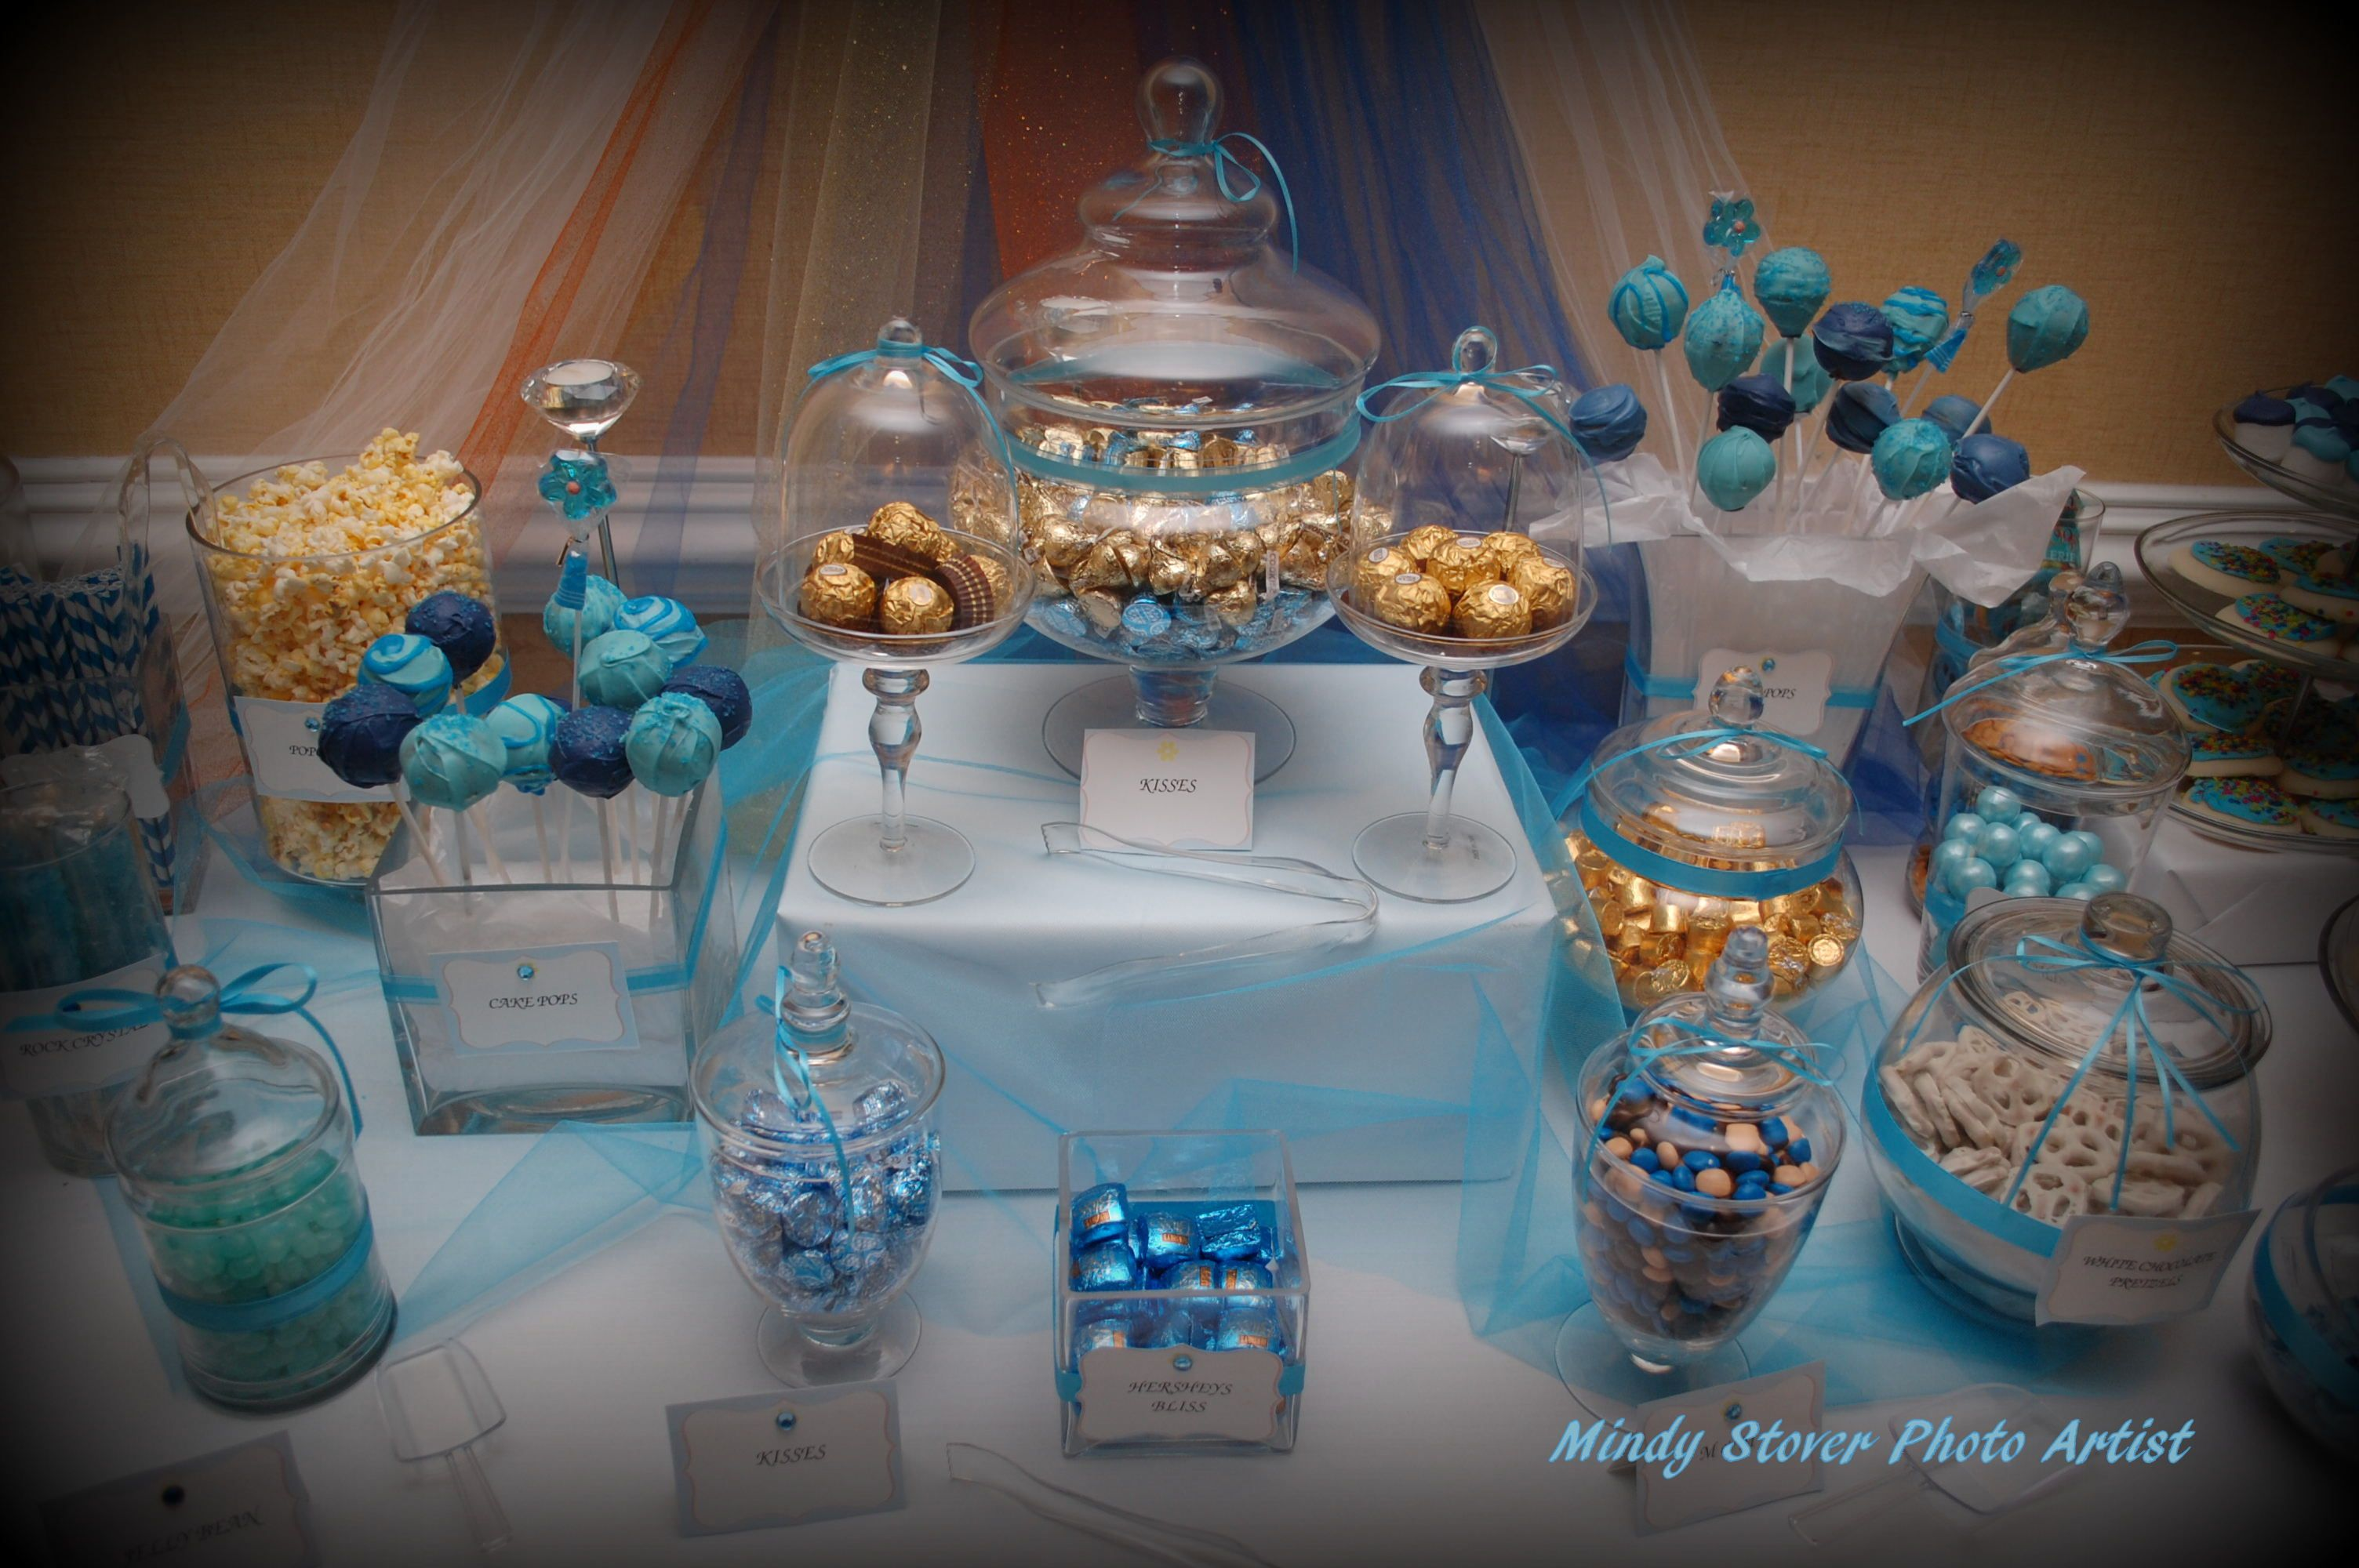 Pin By Mindy Stover On Candy Sweet Buffets Sweet Buffet Candy Table Sweet Candy